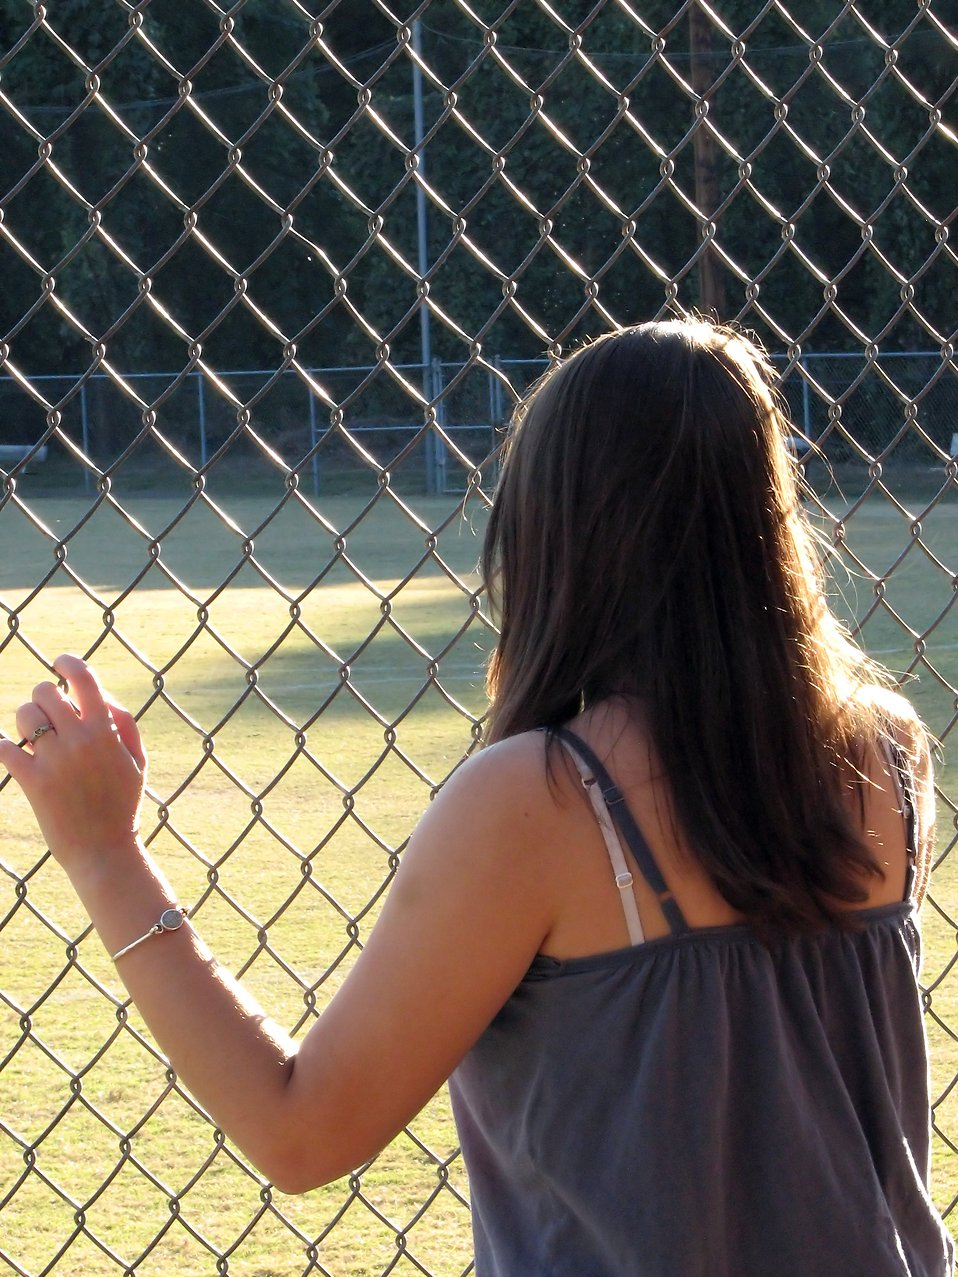 Beautiful teen girl looking through a chain link fence : Free Stock Photo